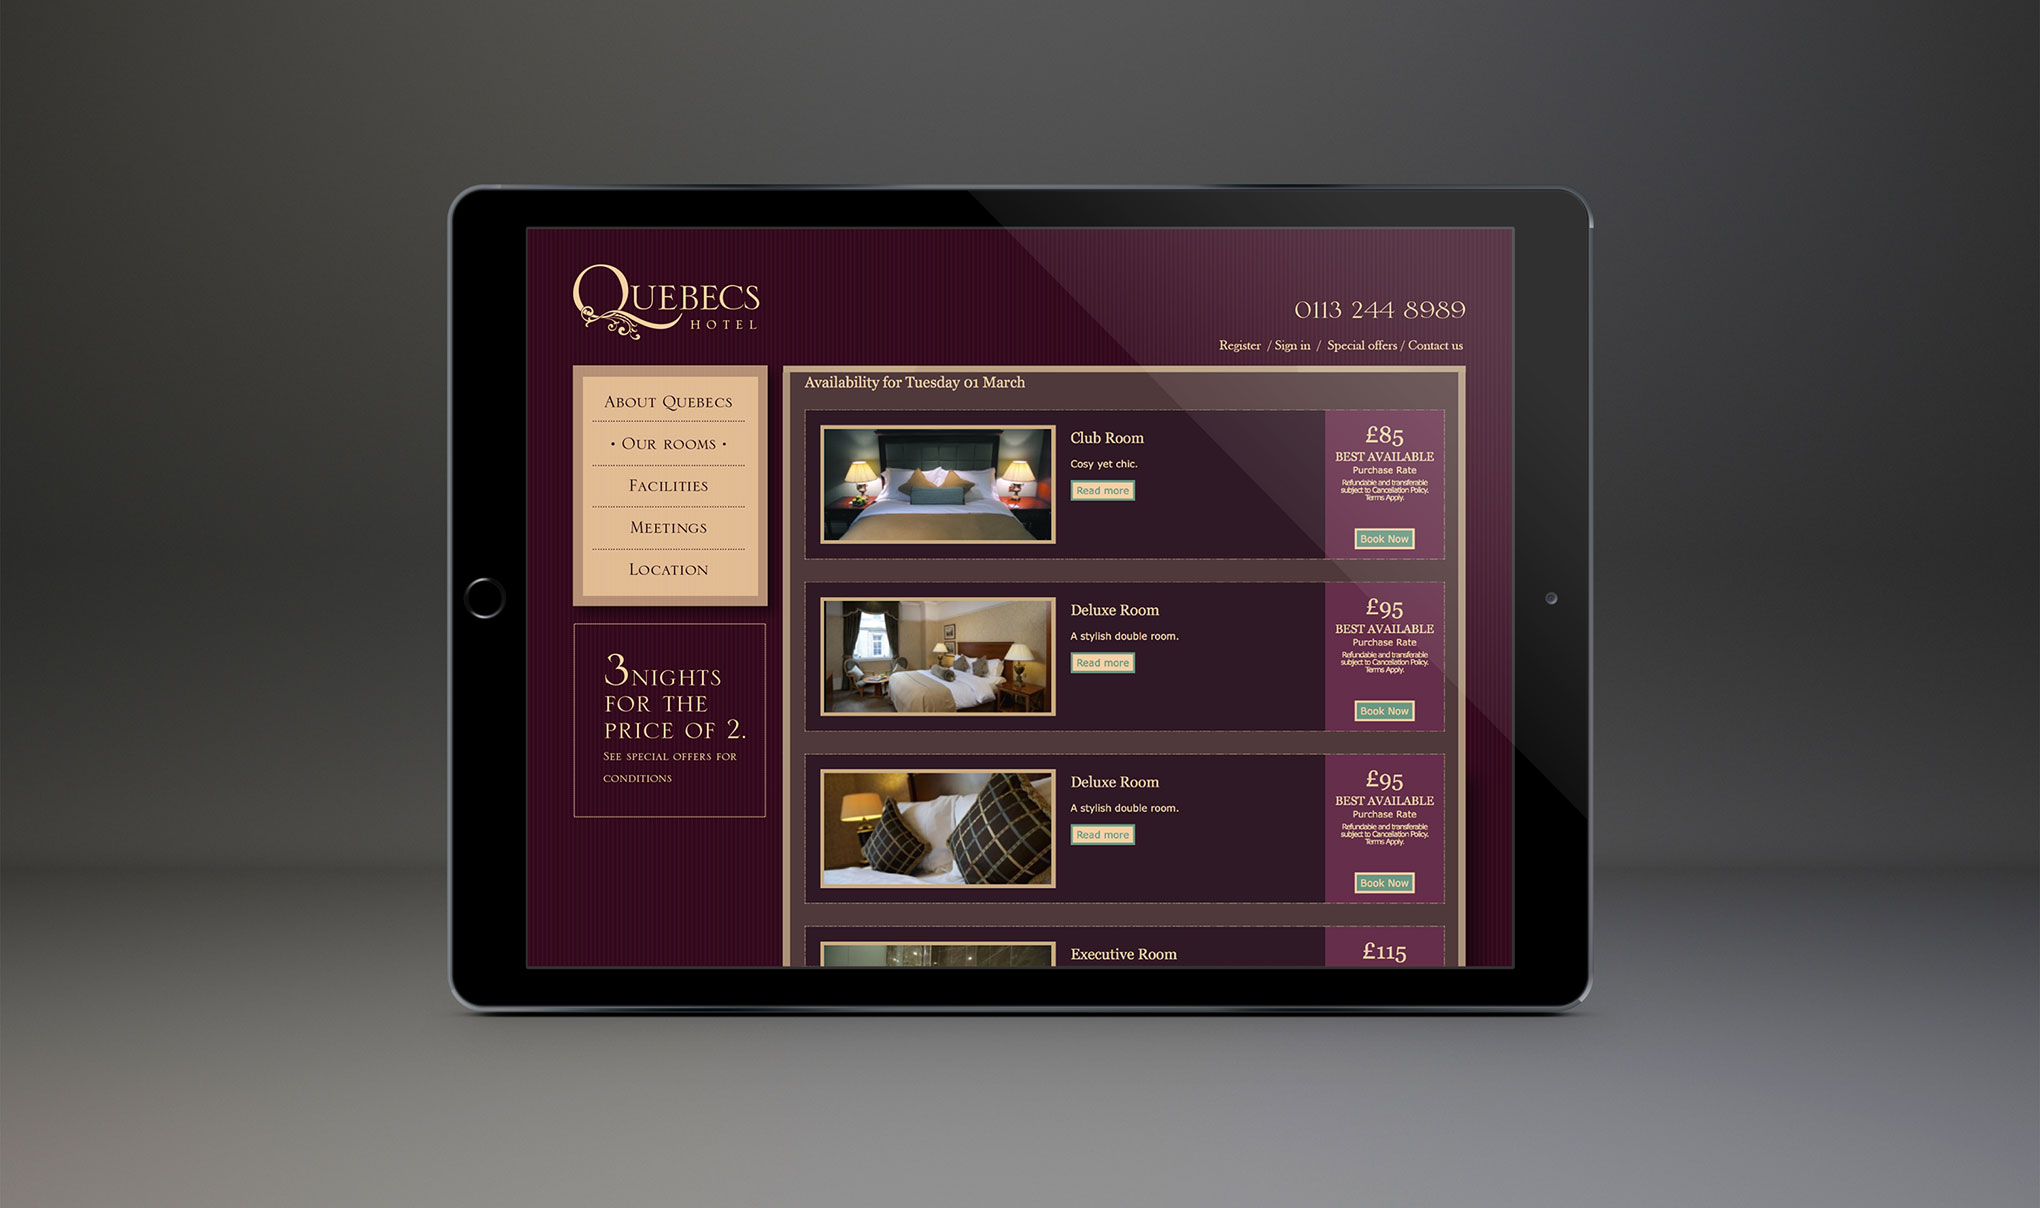 Website design - page showing additional extras which can be booked with a room for Quebecs hotel, Leeds. Designed by Web Design Agency - Flipflop Design Ltd.